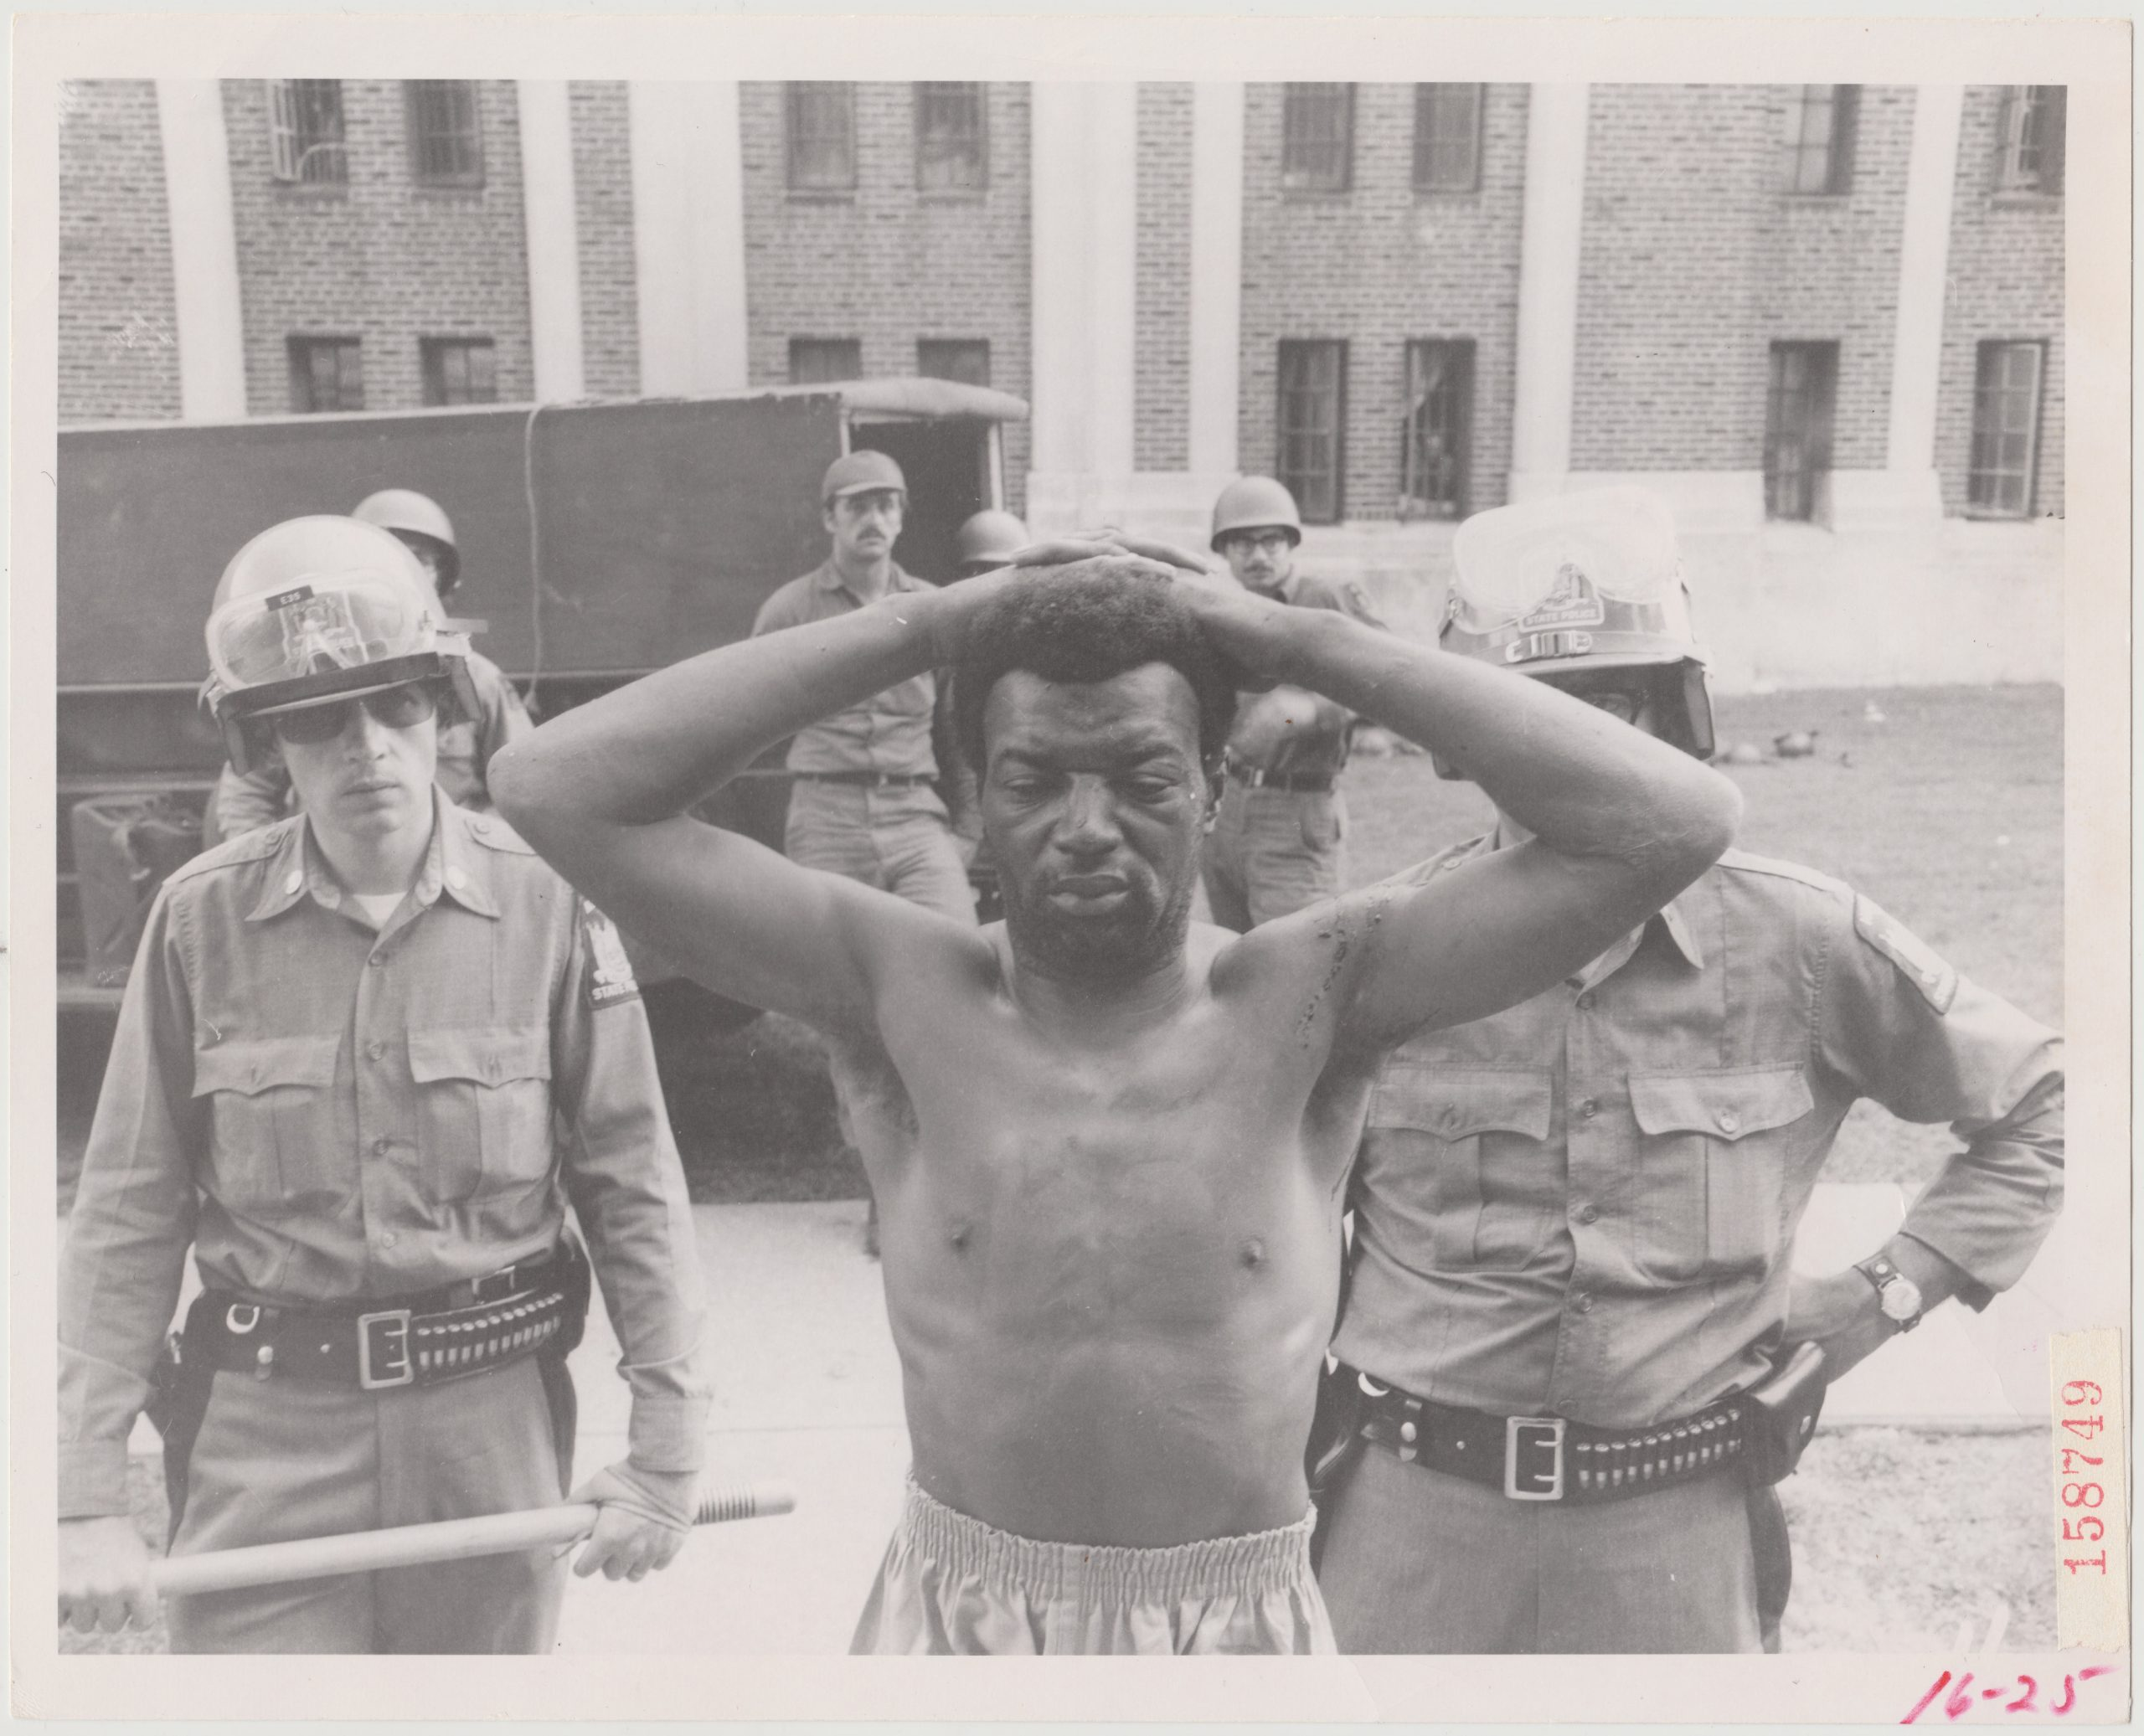 Attica: America's infamous prison uprising is still a story about all of us